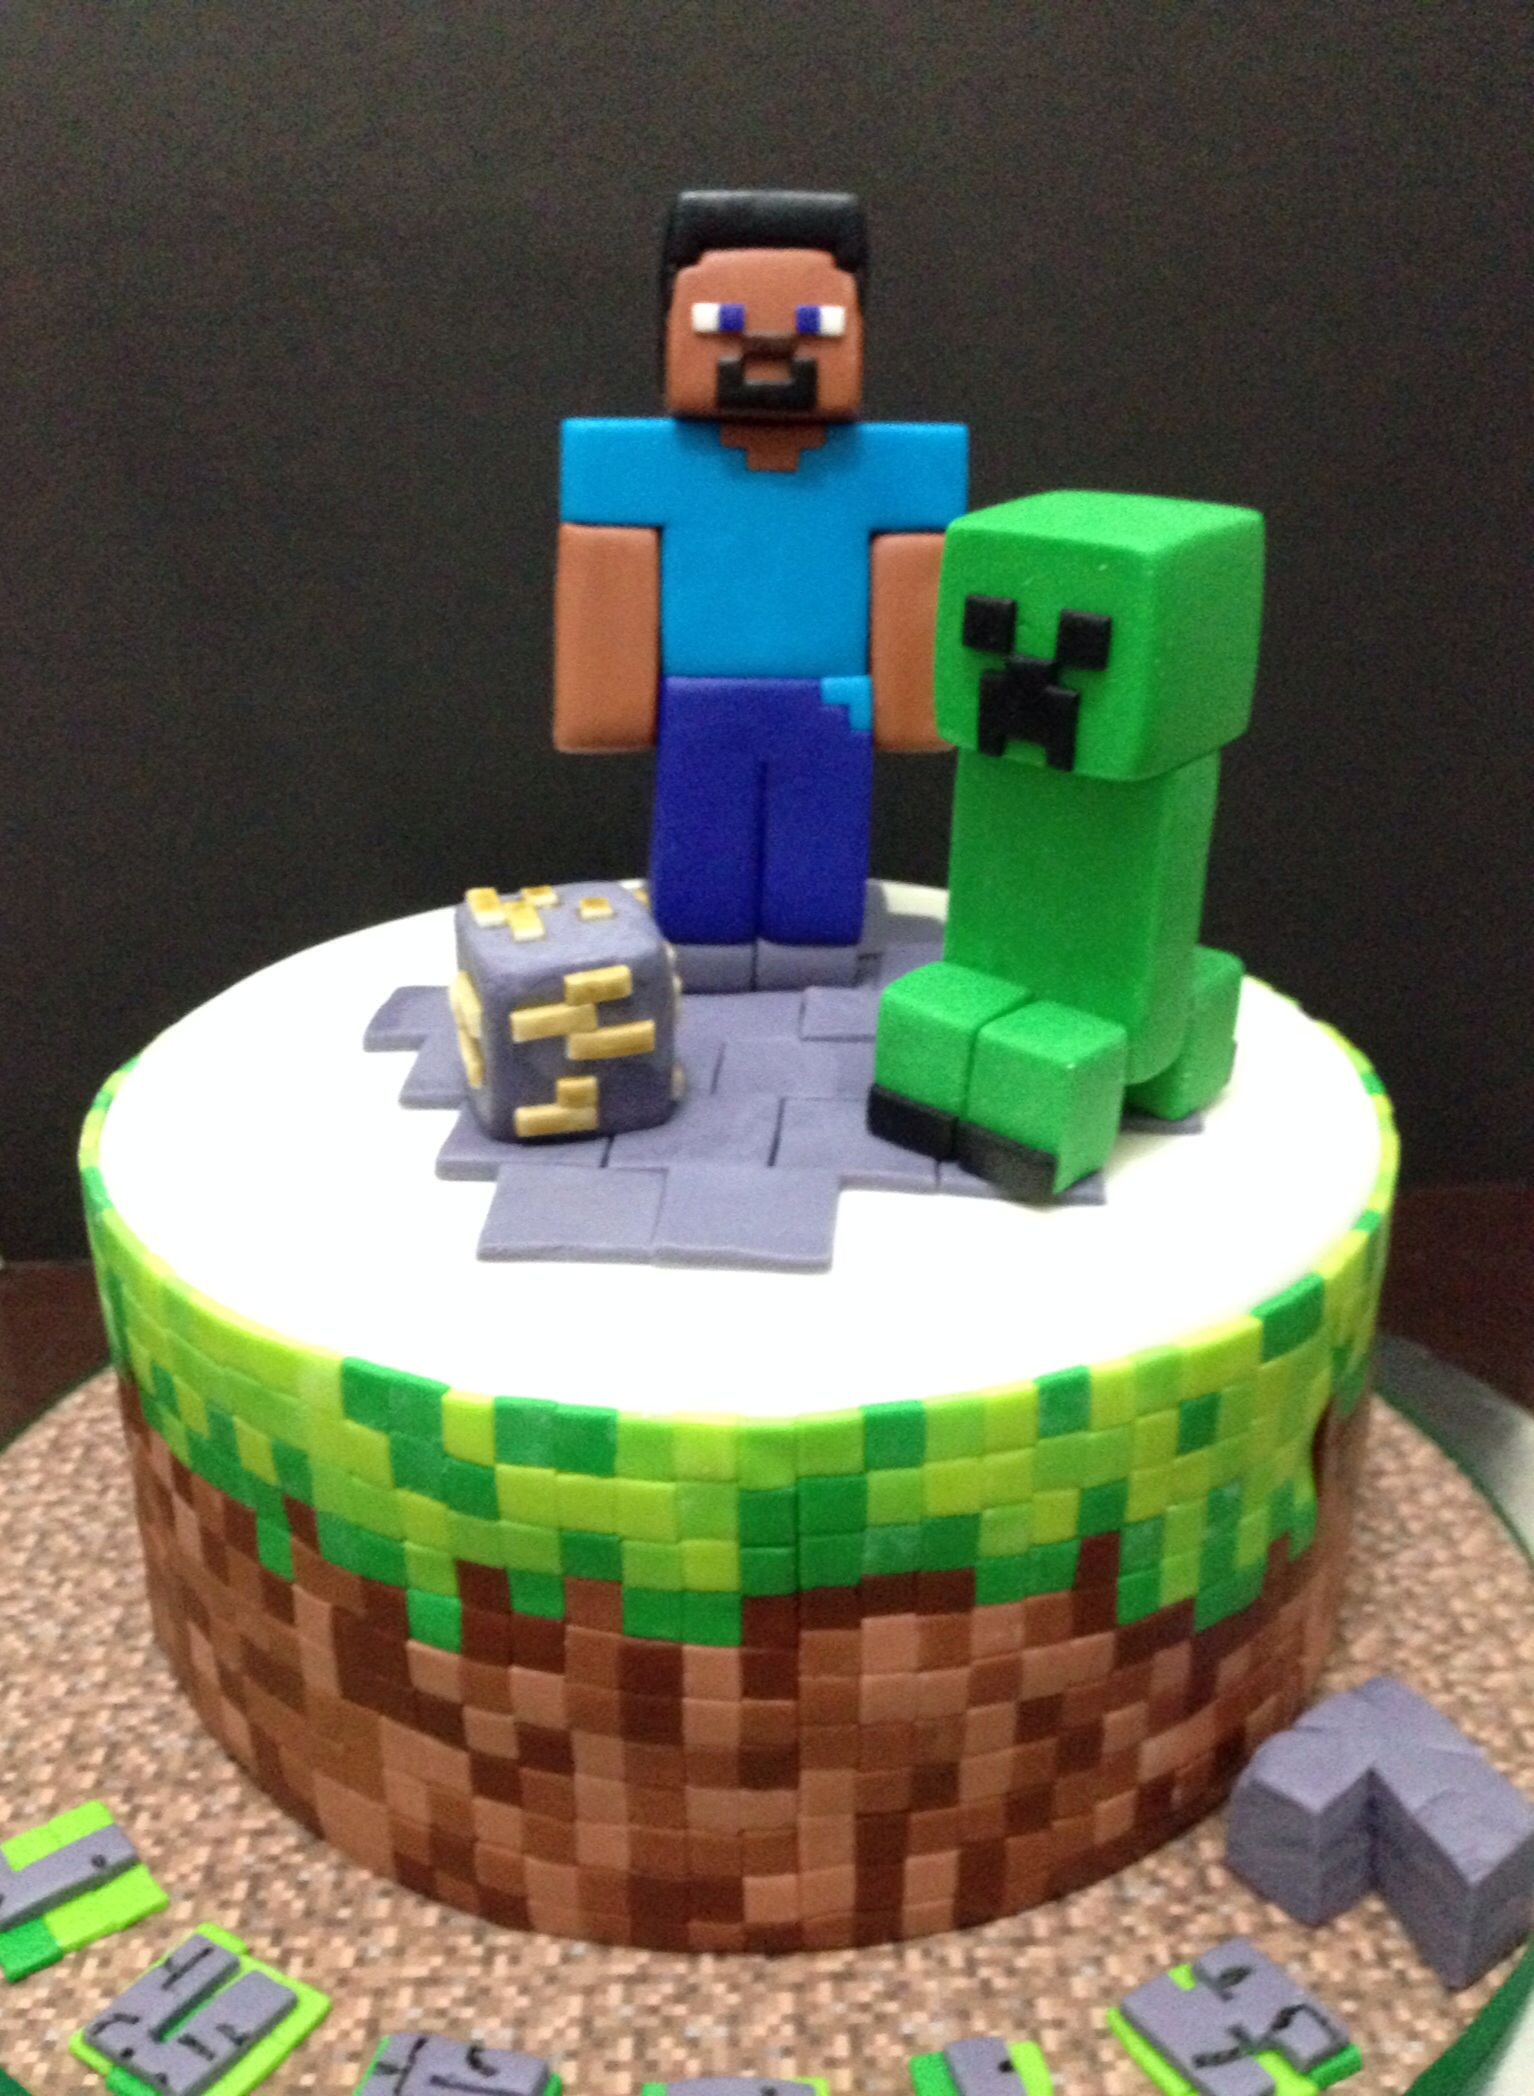 Minecraft cake for a little boy who loves to play this game a lot!